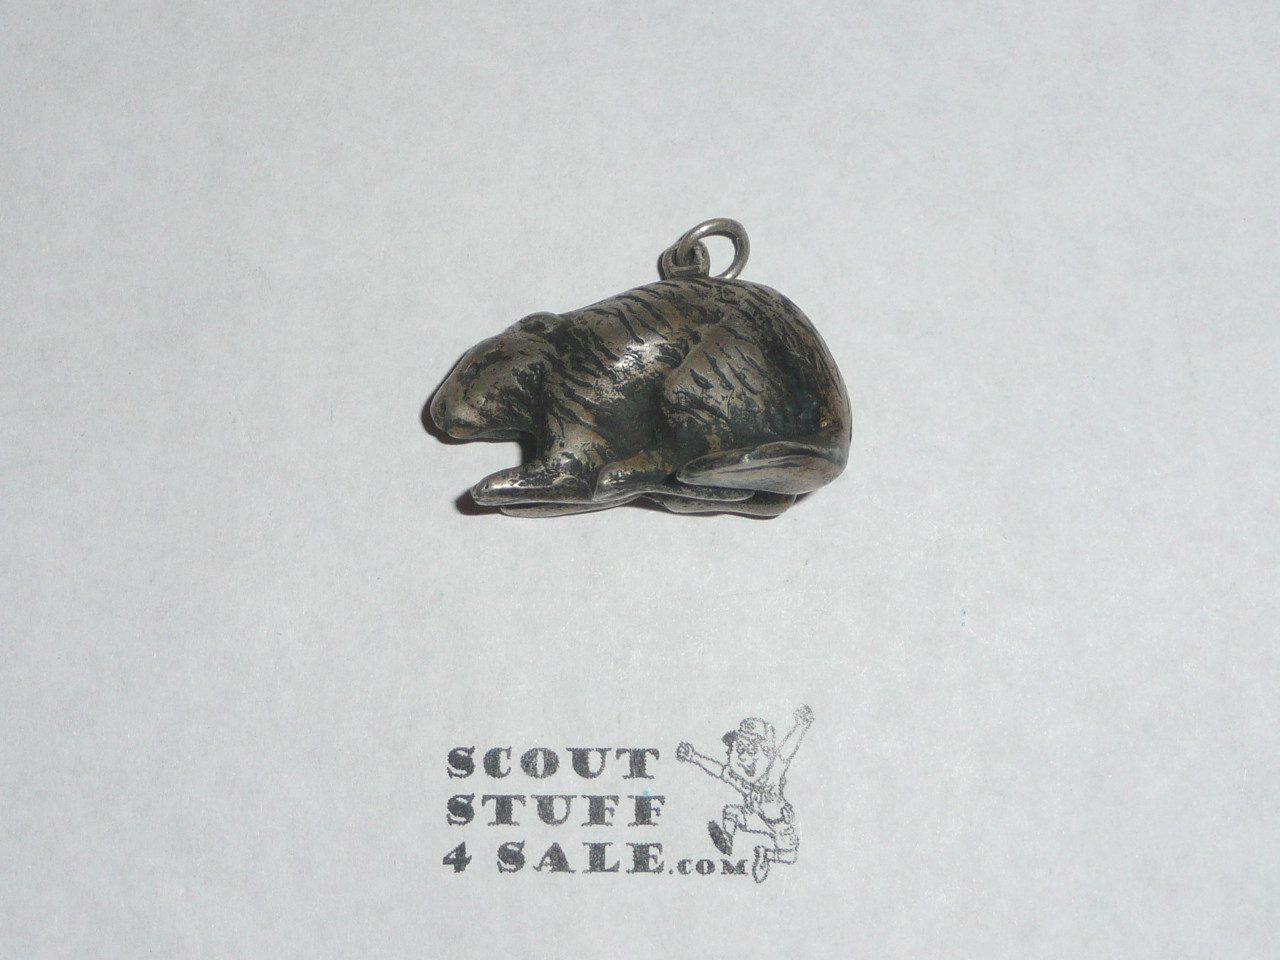 1931 Silver Beaver Award, Type 1, Very RARE, 34mm pendant, This is the medal style, ribbon in poor condition